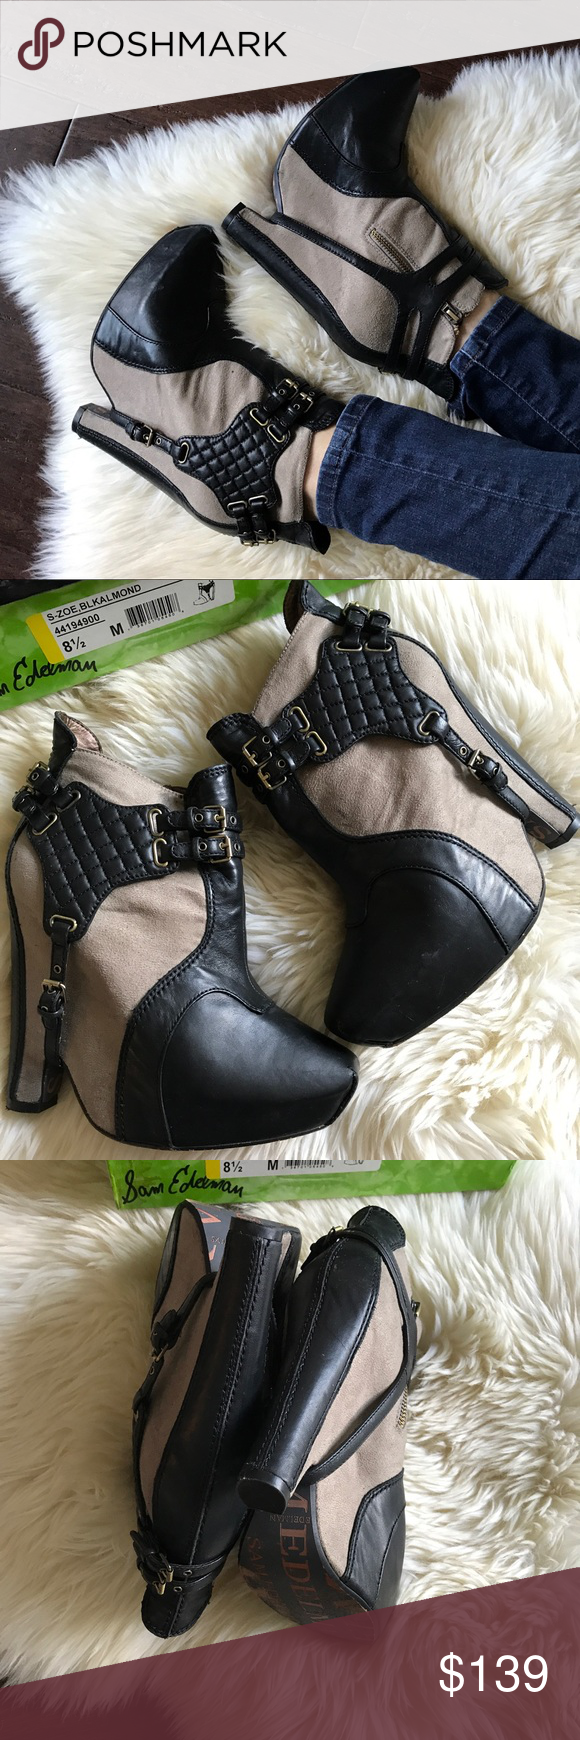 a1d996cc87898 Sam Edelman Zoe Harness Platform Ankle Booties 8.5 Rich leather mixes with  soft faux suede on